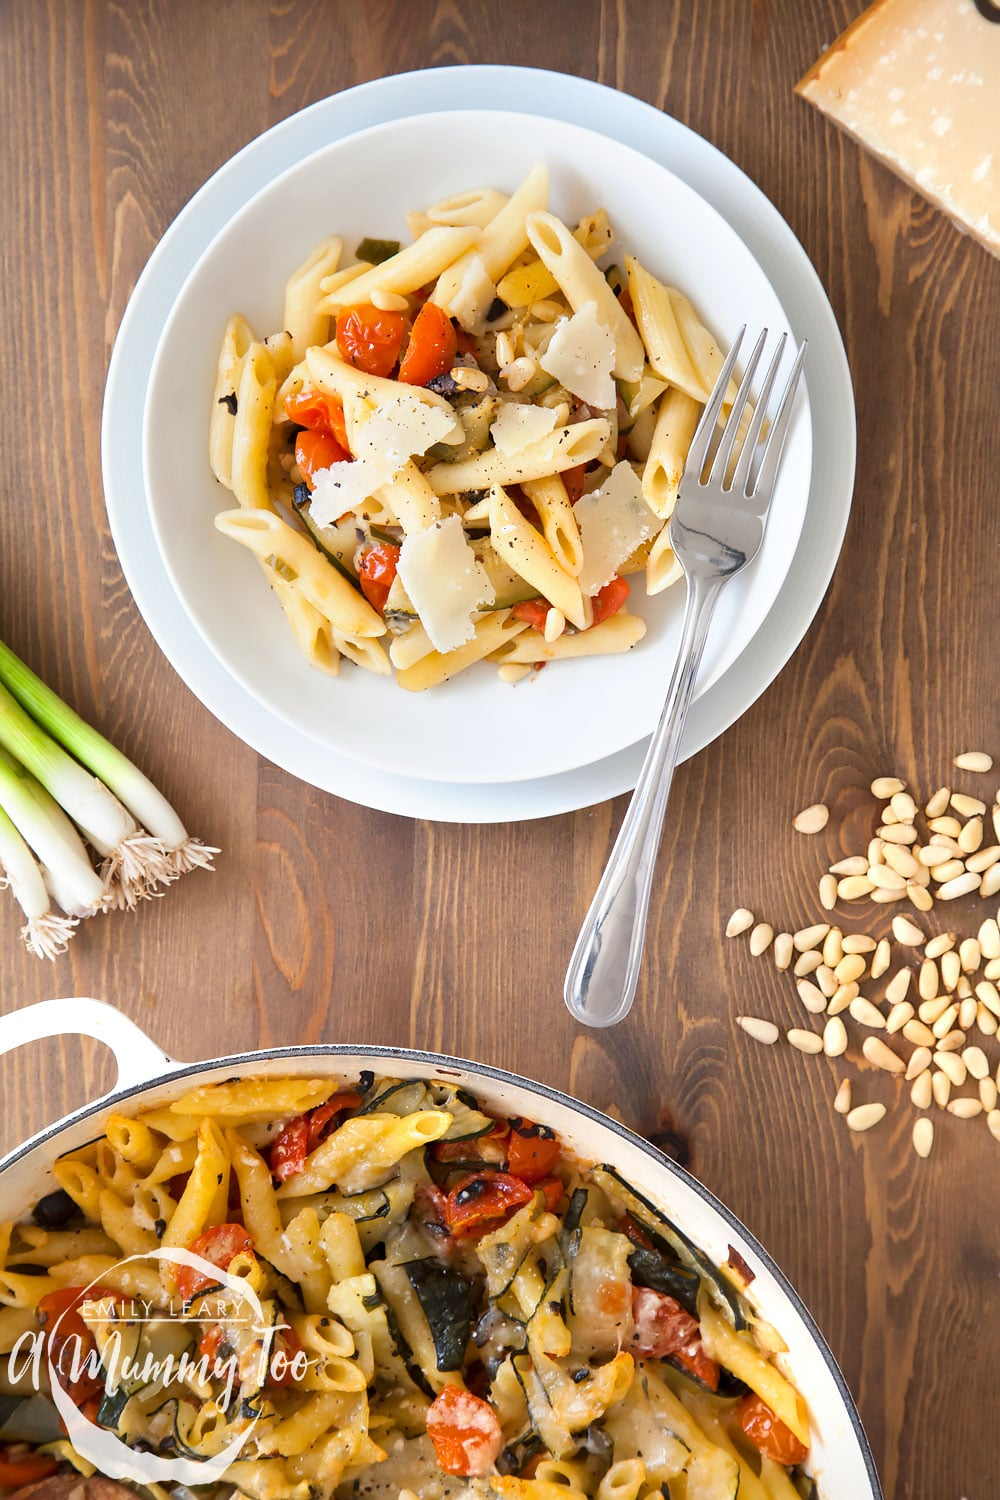 Serve your courgette and black olive pasta gratin and enjoy!